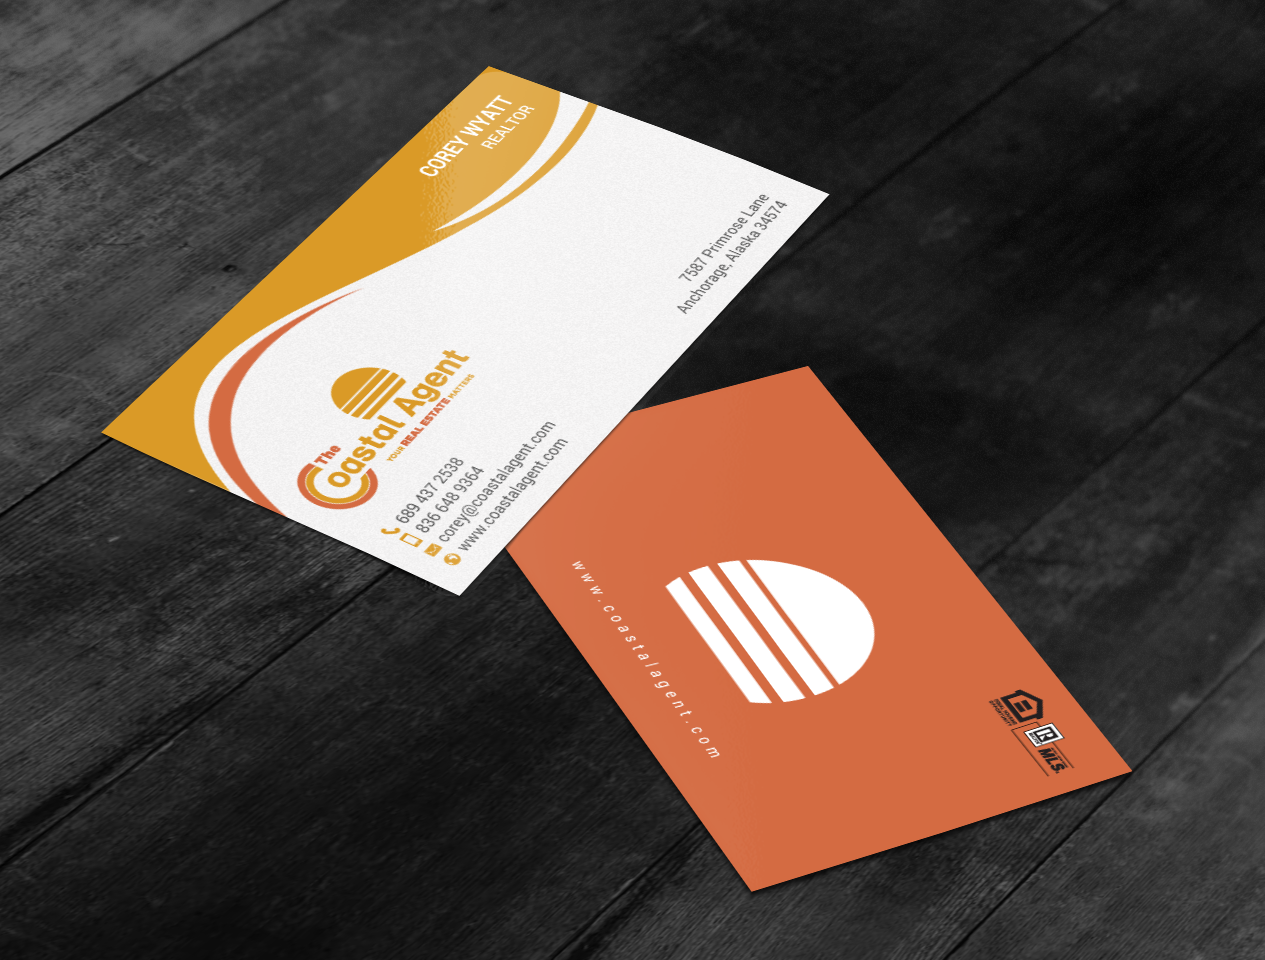 Elegant playful real estate agent business card design for a business card design by chandrayaaneative for this project design 17878569 reheart Gallery